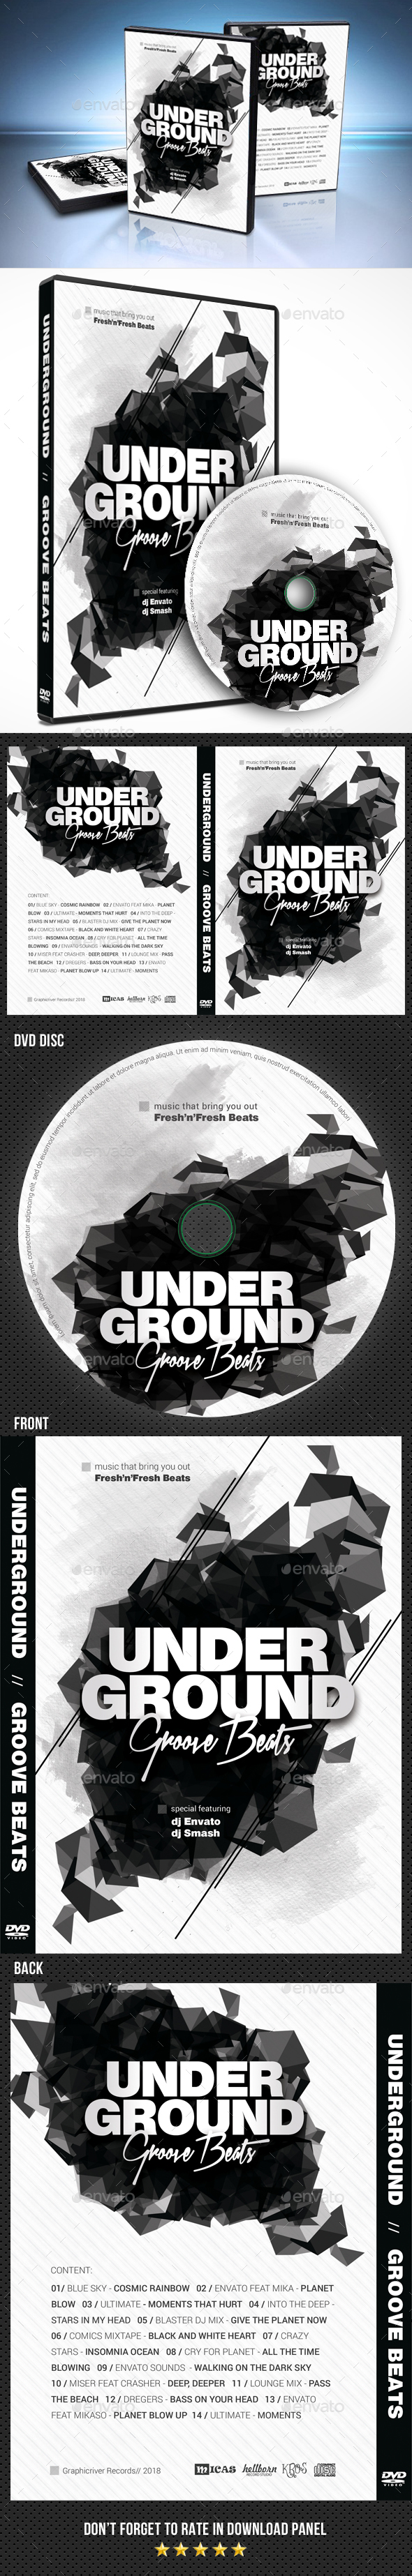 Underground Groove DVD Cover - CD & DVD Artwork Print Templates